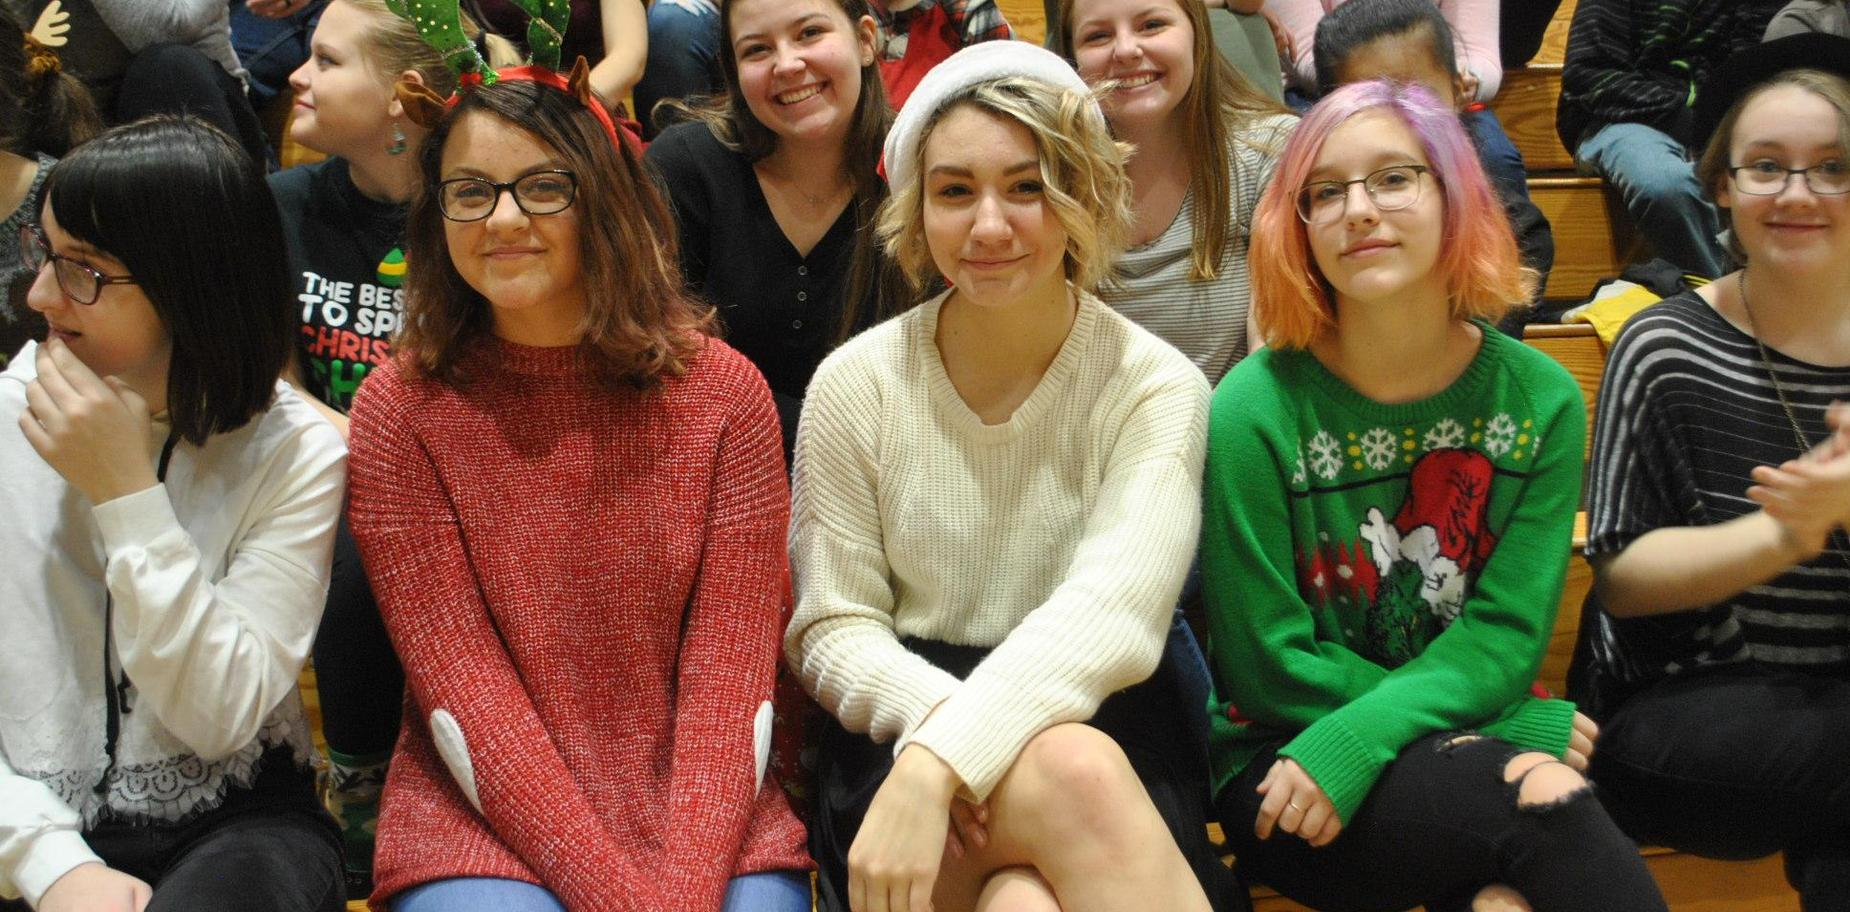 KHS Students in holiday garb